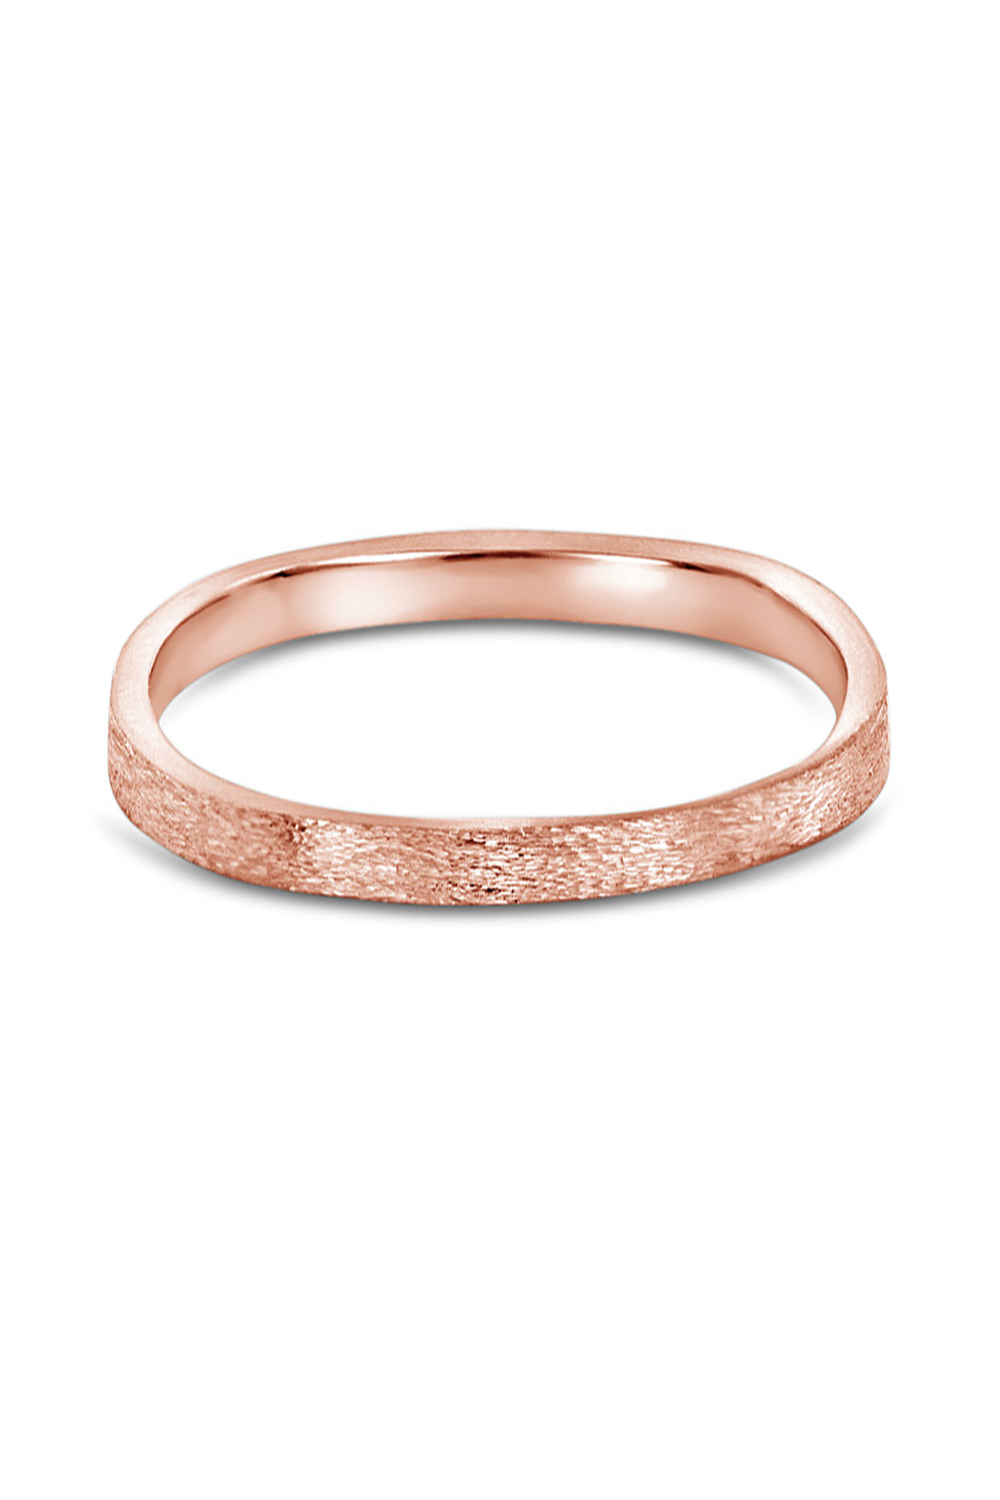 Suma Ring Rose Gold